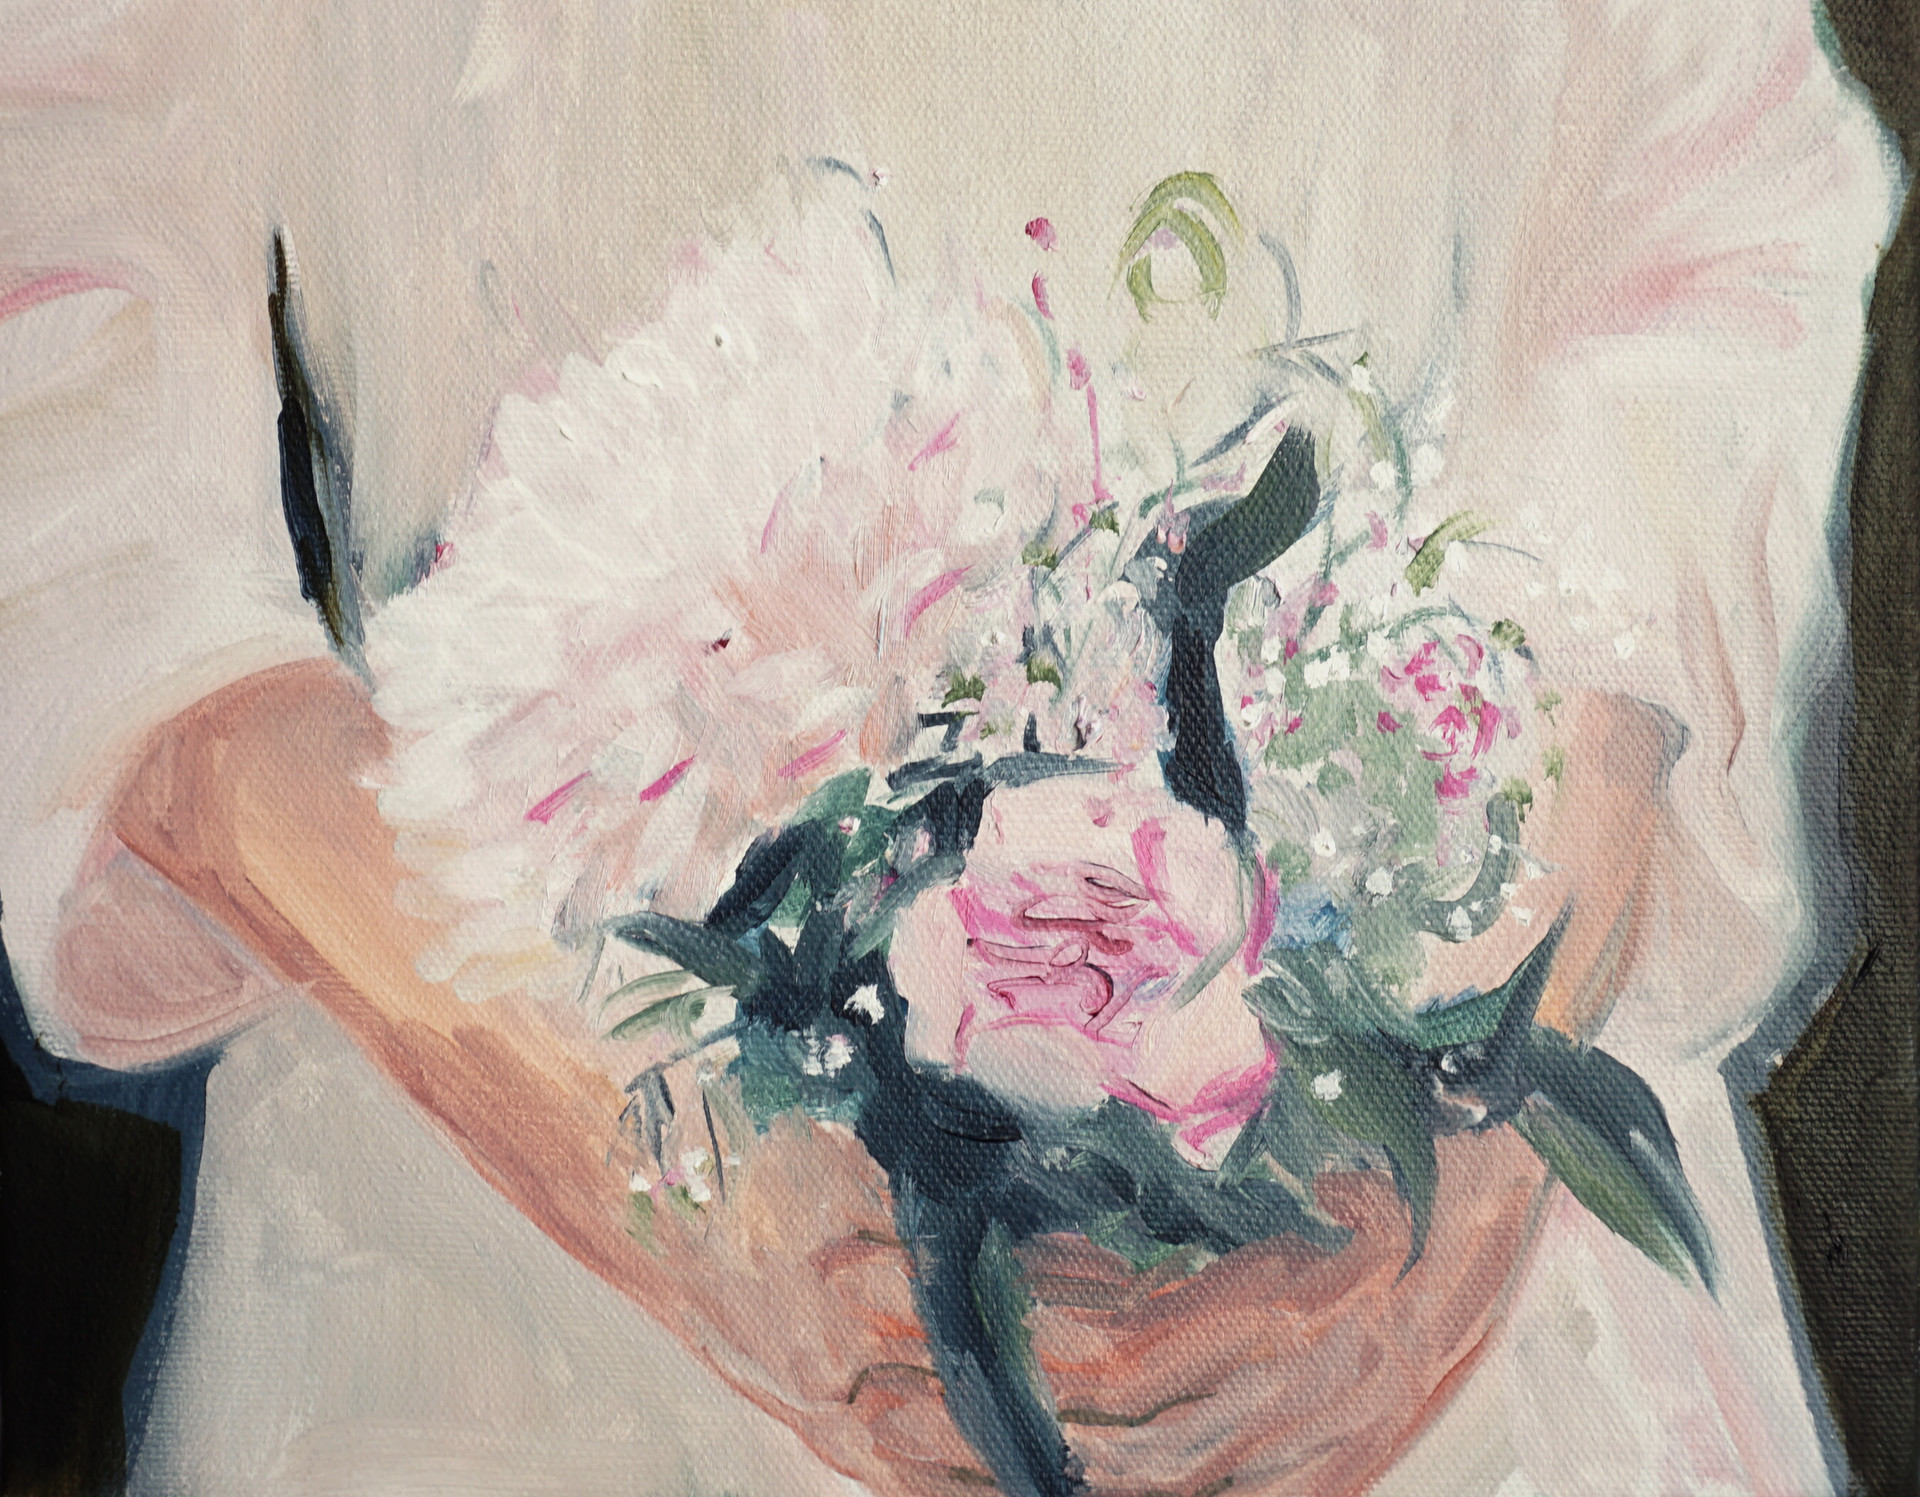 Bouquet, oil paint on canvas, 8 x 10 inches, 2020